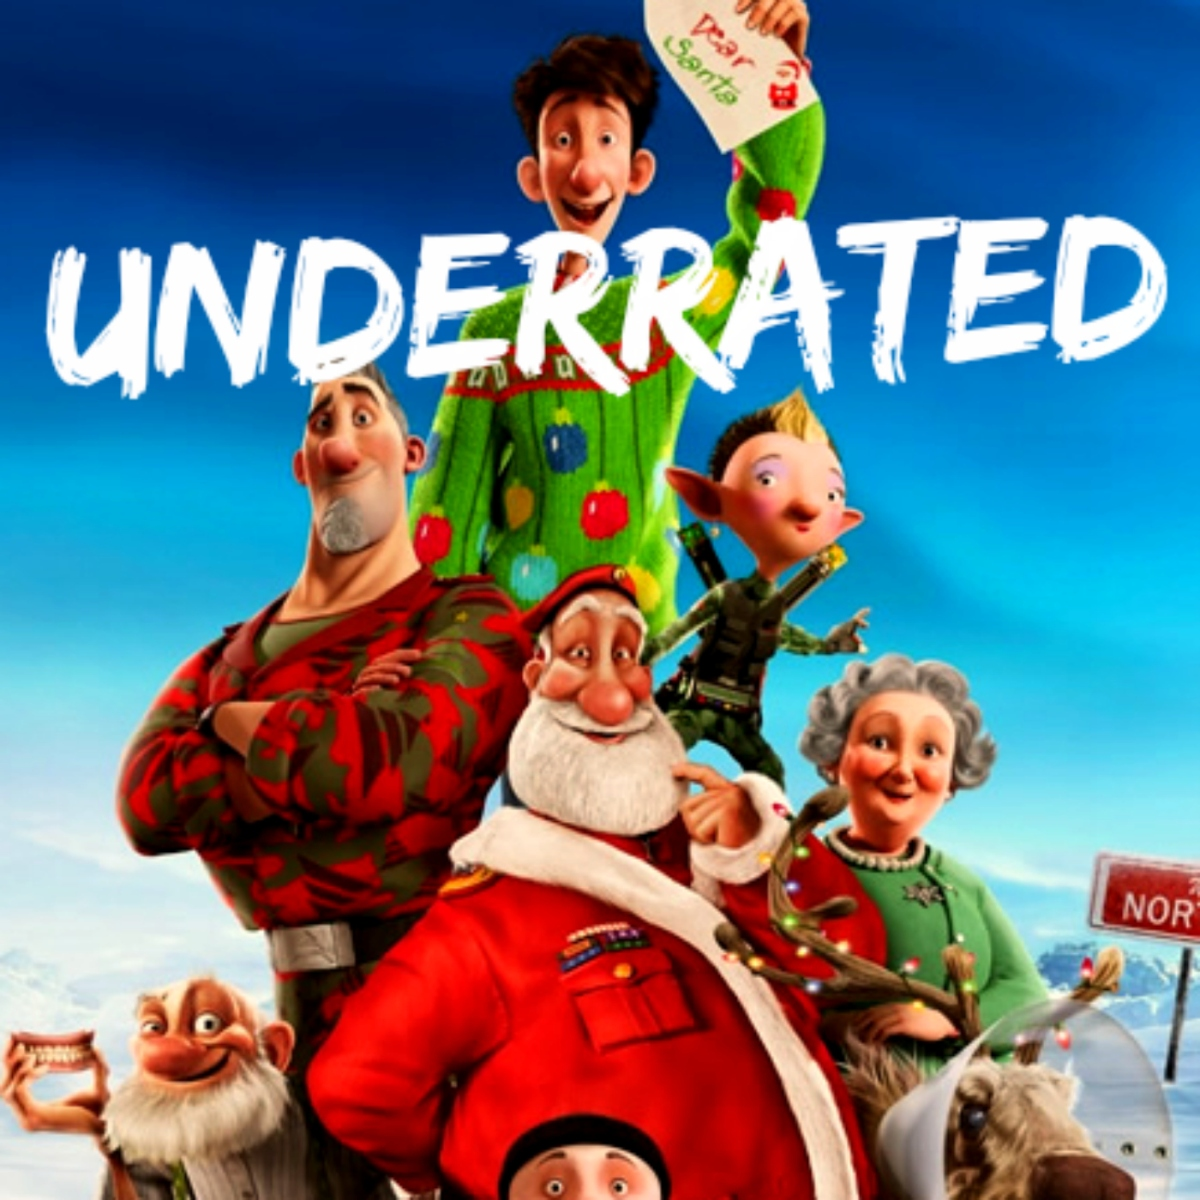 arthurs perfect christmas full movie duration 5434 official caillou full episodes hd duration 10023 caillou 5988633 views - Arthur Christmas Full Movie Online